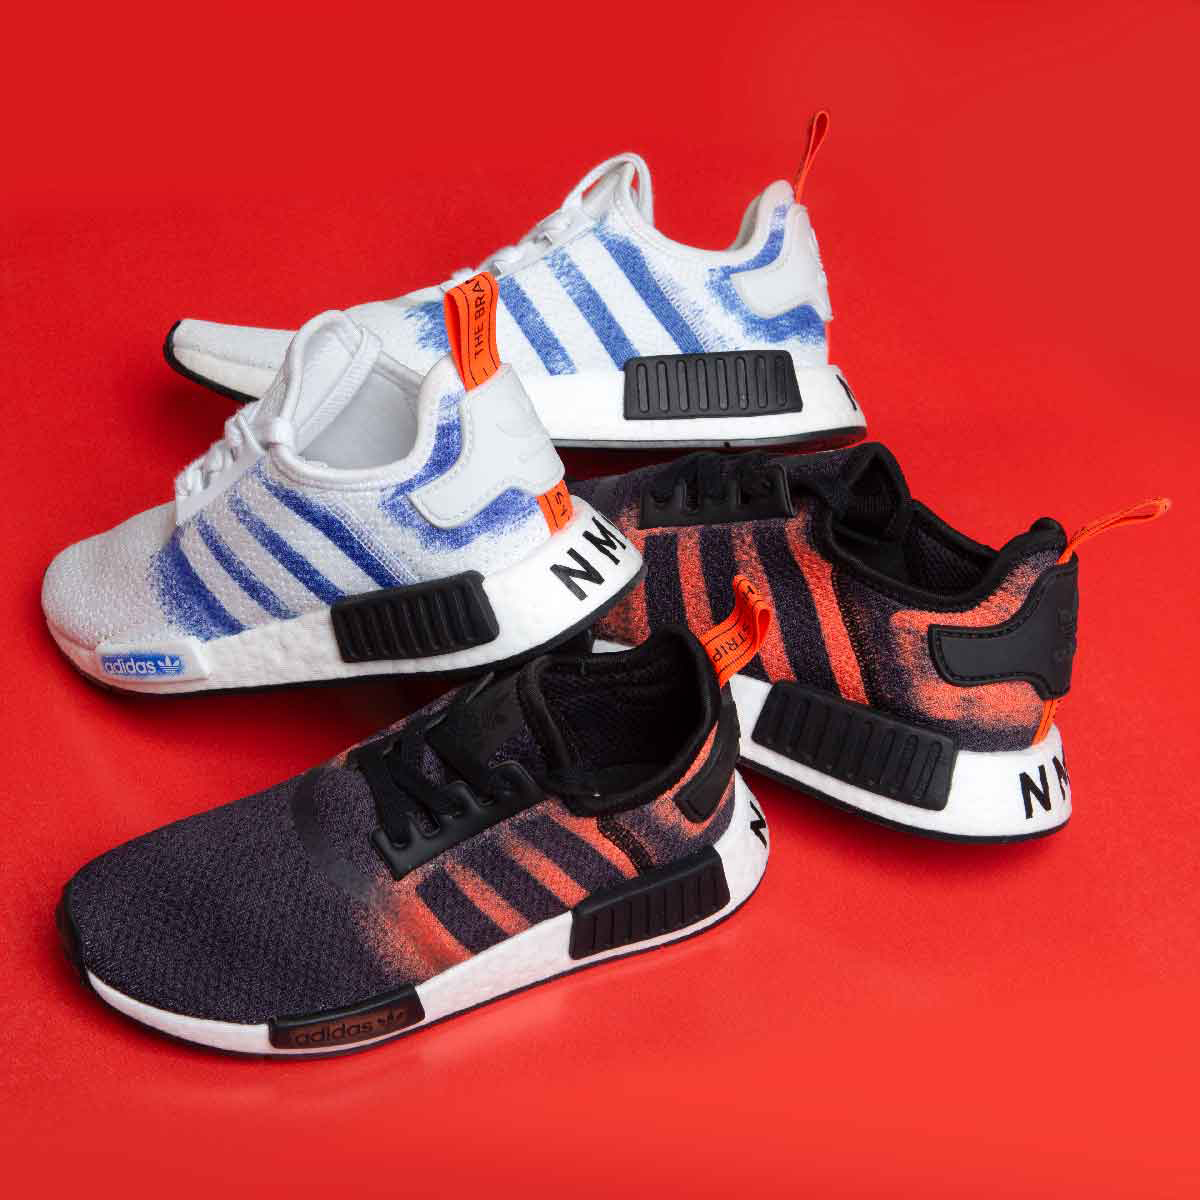 adidas NMD Stencil Sneaker Pack